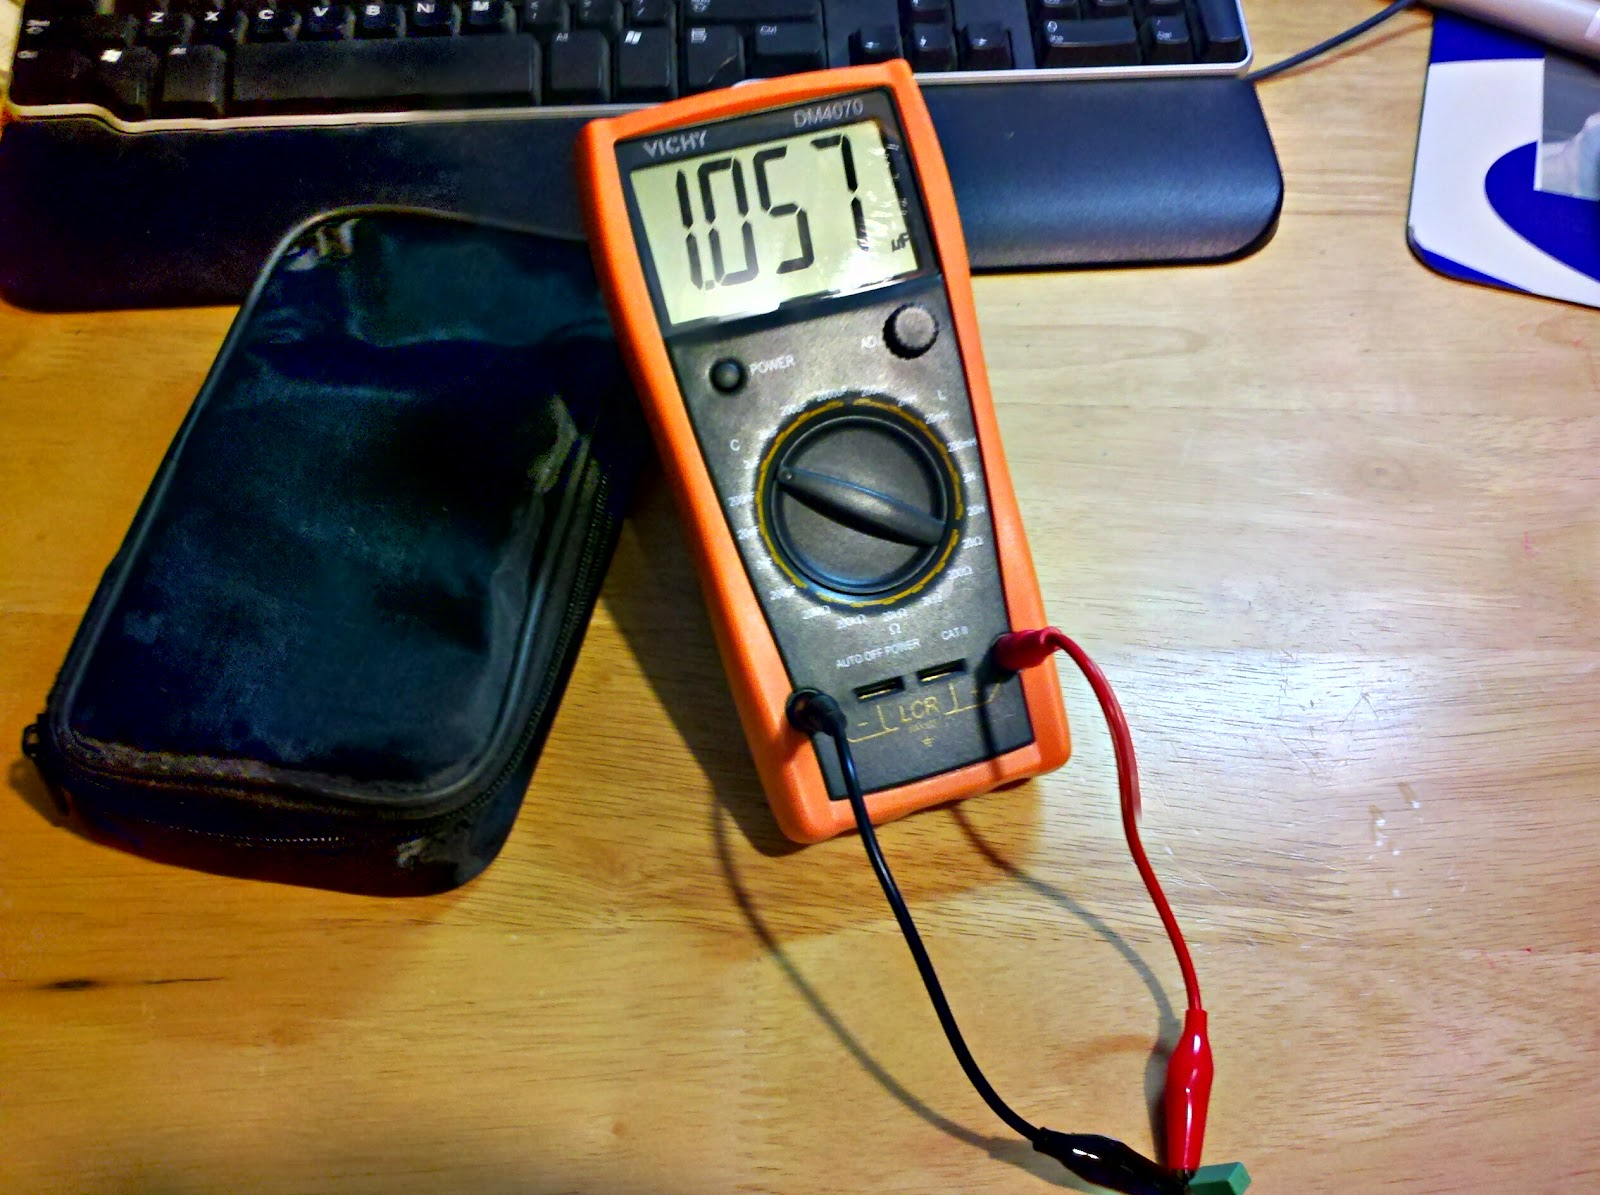 Rants From The Embedded Hardware Guy Vichy Dm4070 Lcr Meter Teardown Bridge Ebay Upon Tearing It Open First Thing I Noticed Was Large Amount Of Manual Adjustment Pots Most Higher Priced Meters Have A Bit More